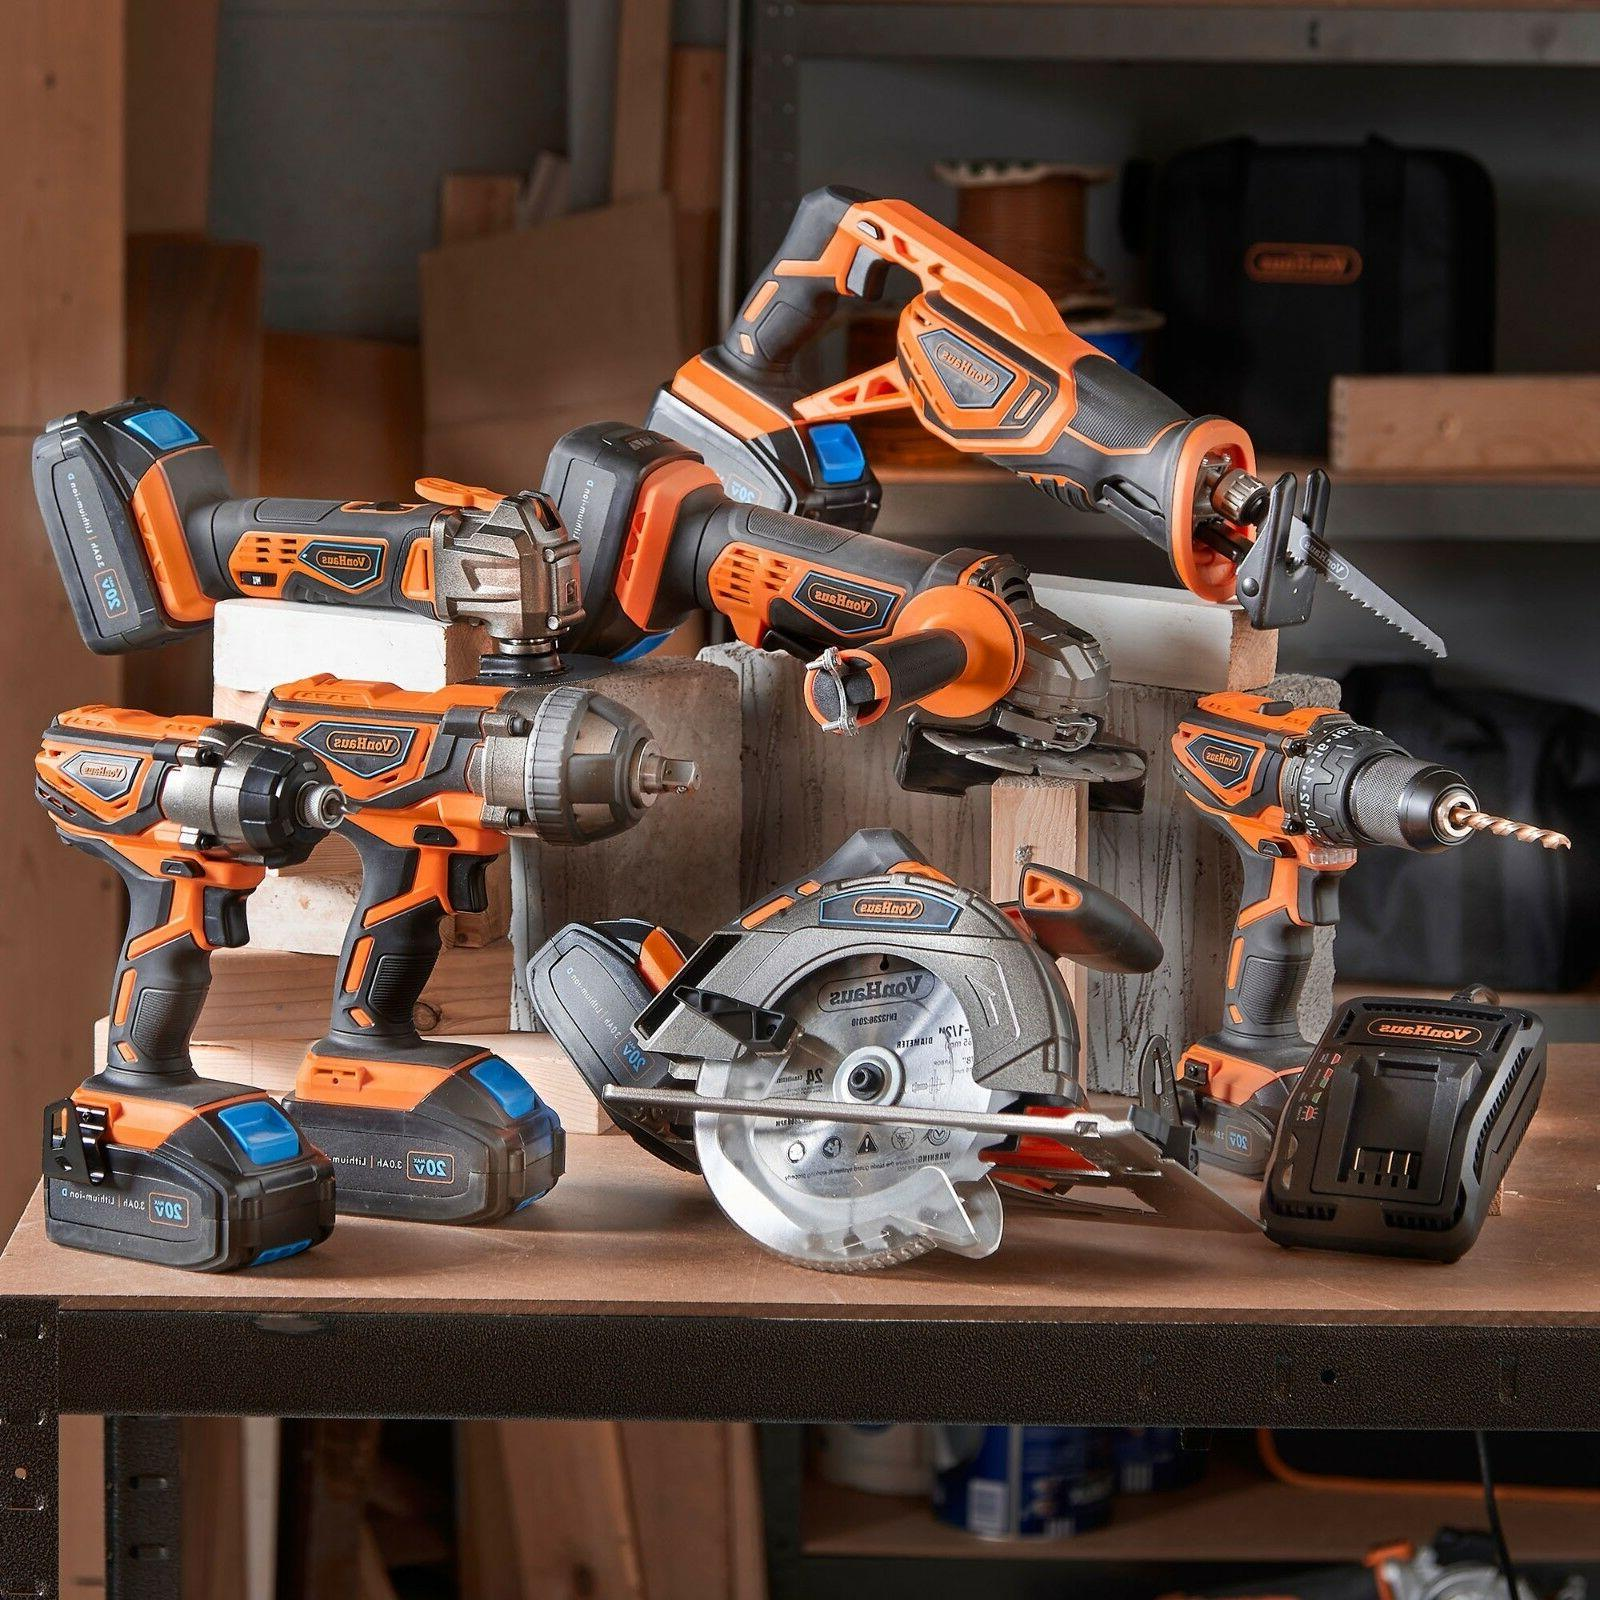 VonHaus 20V Cordless 2-TooI Drill Kit with & Charger